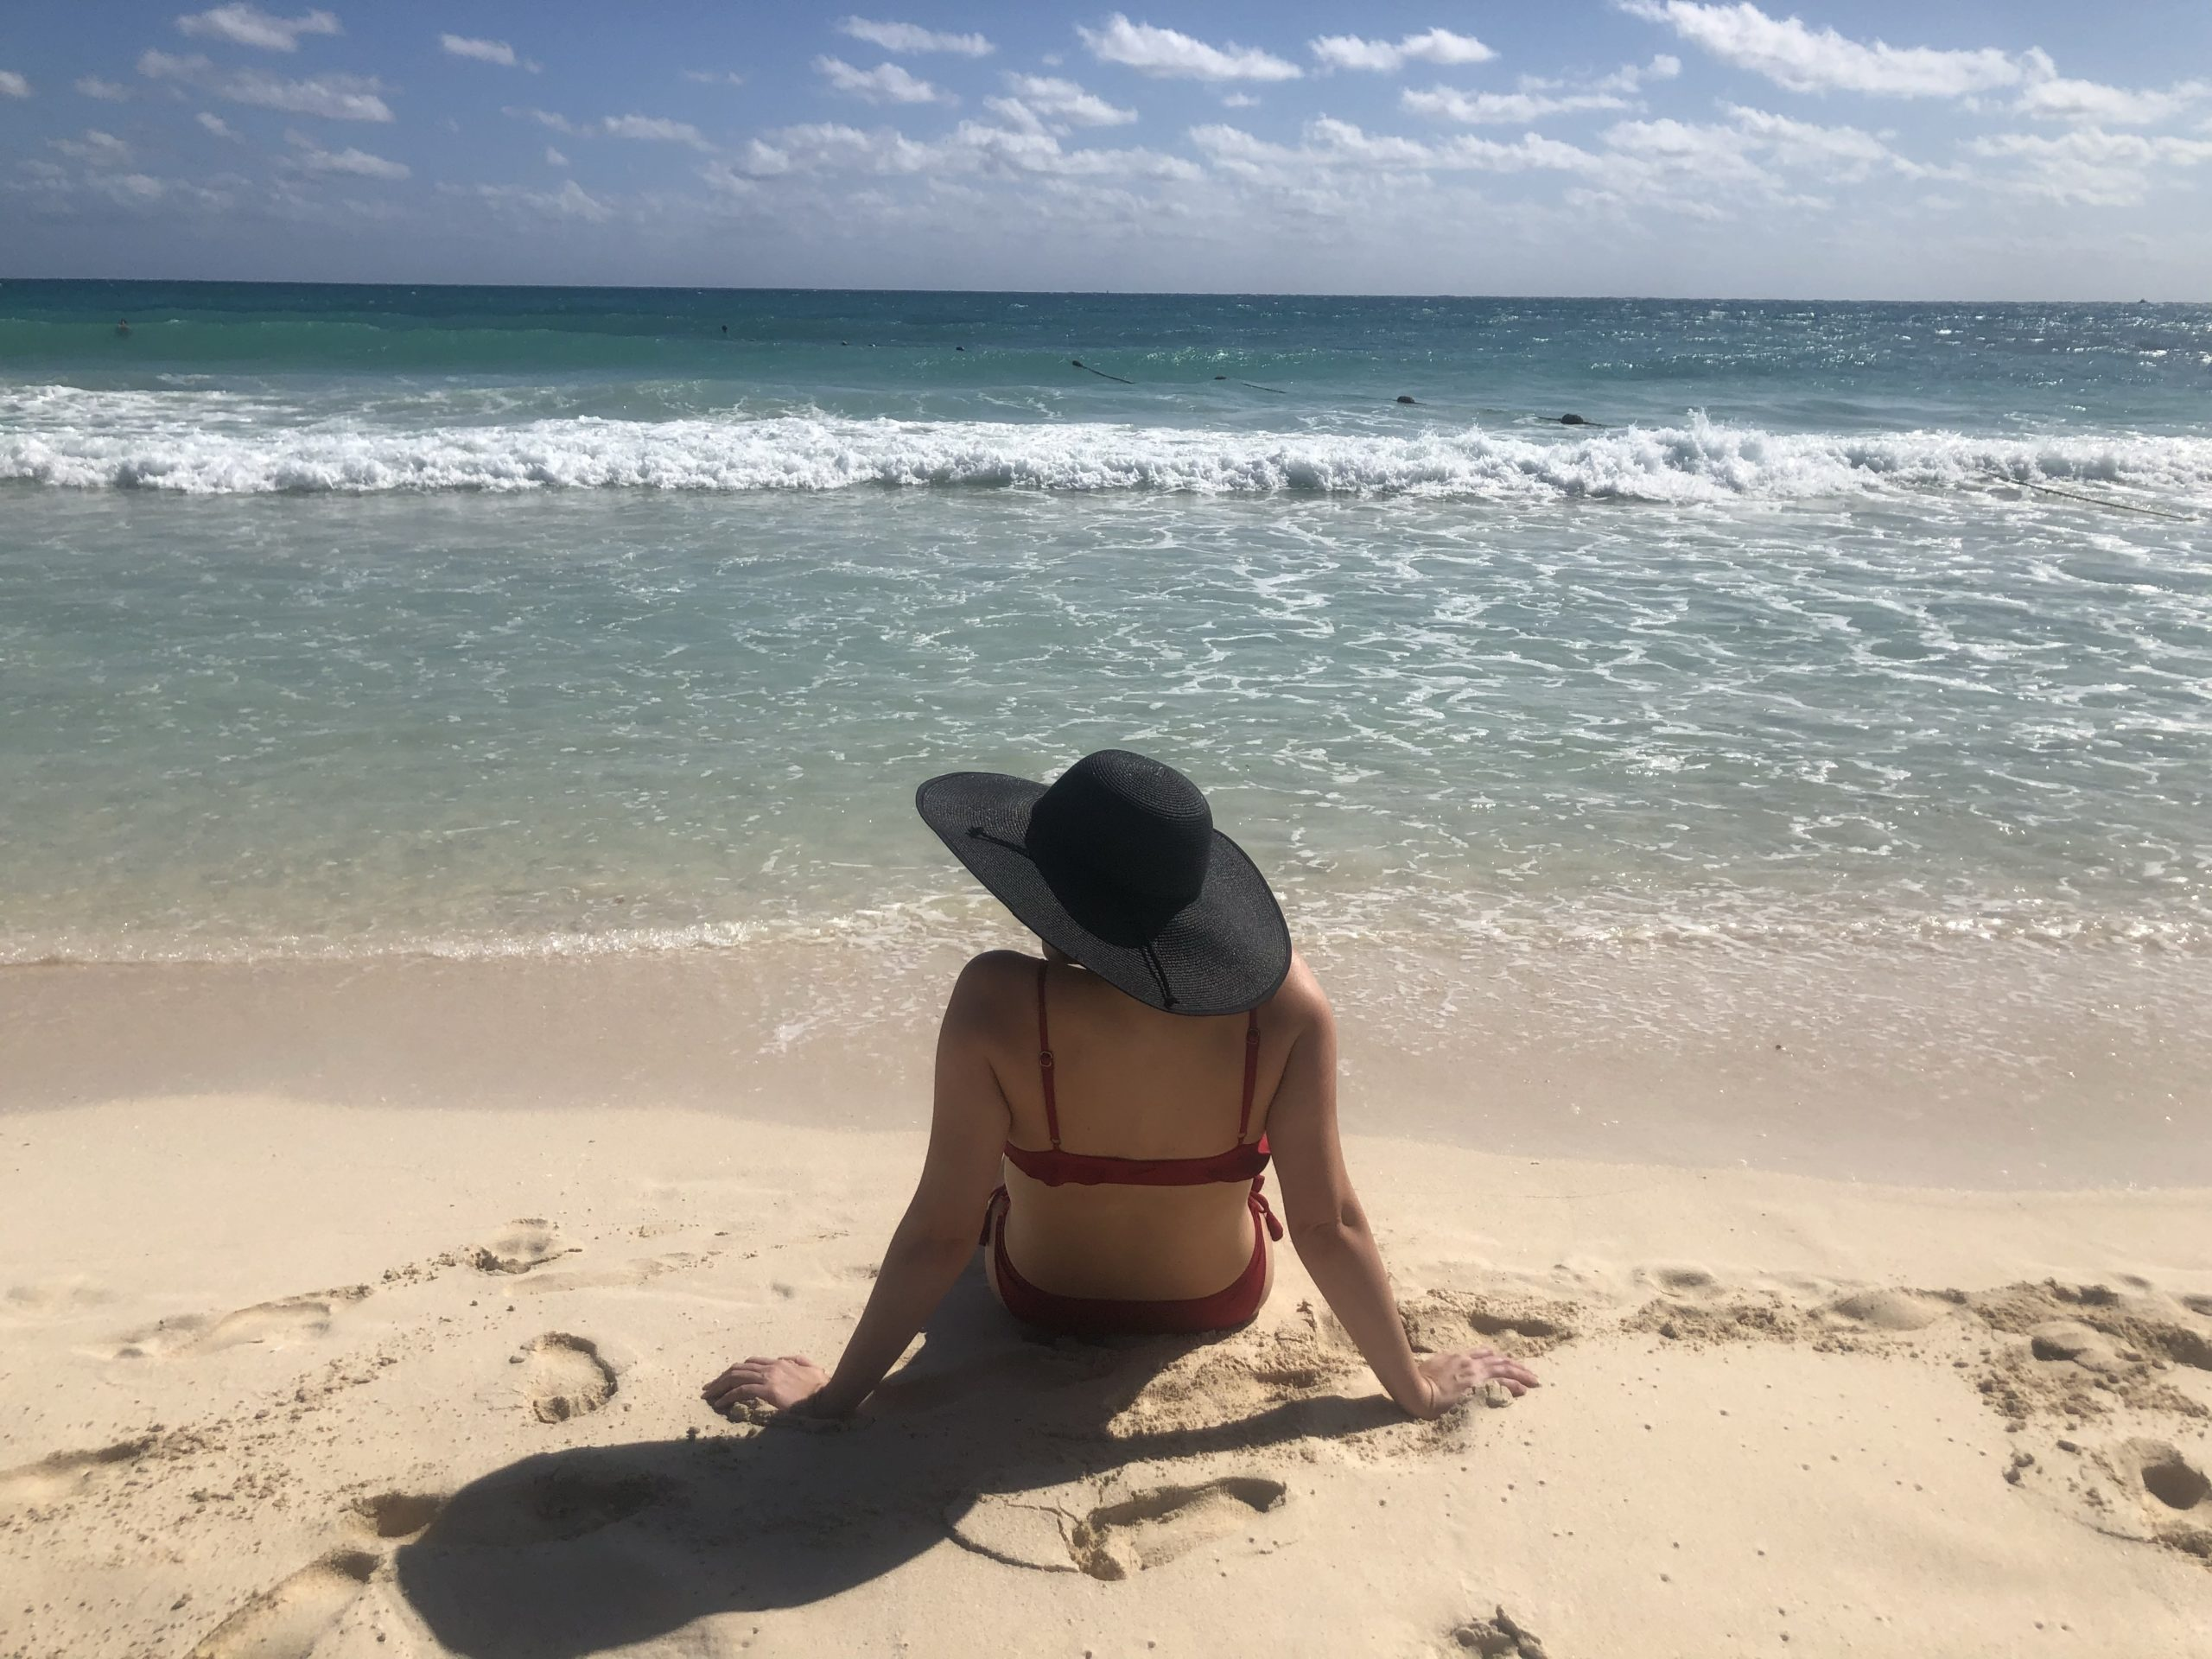 woman in a sun hat sitting on a sandy beach, gazing at the water